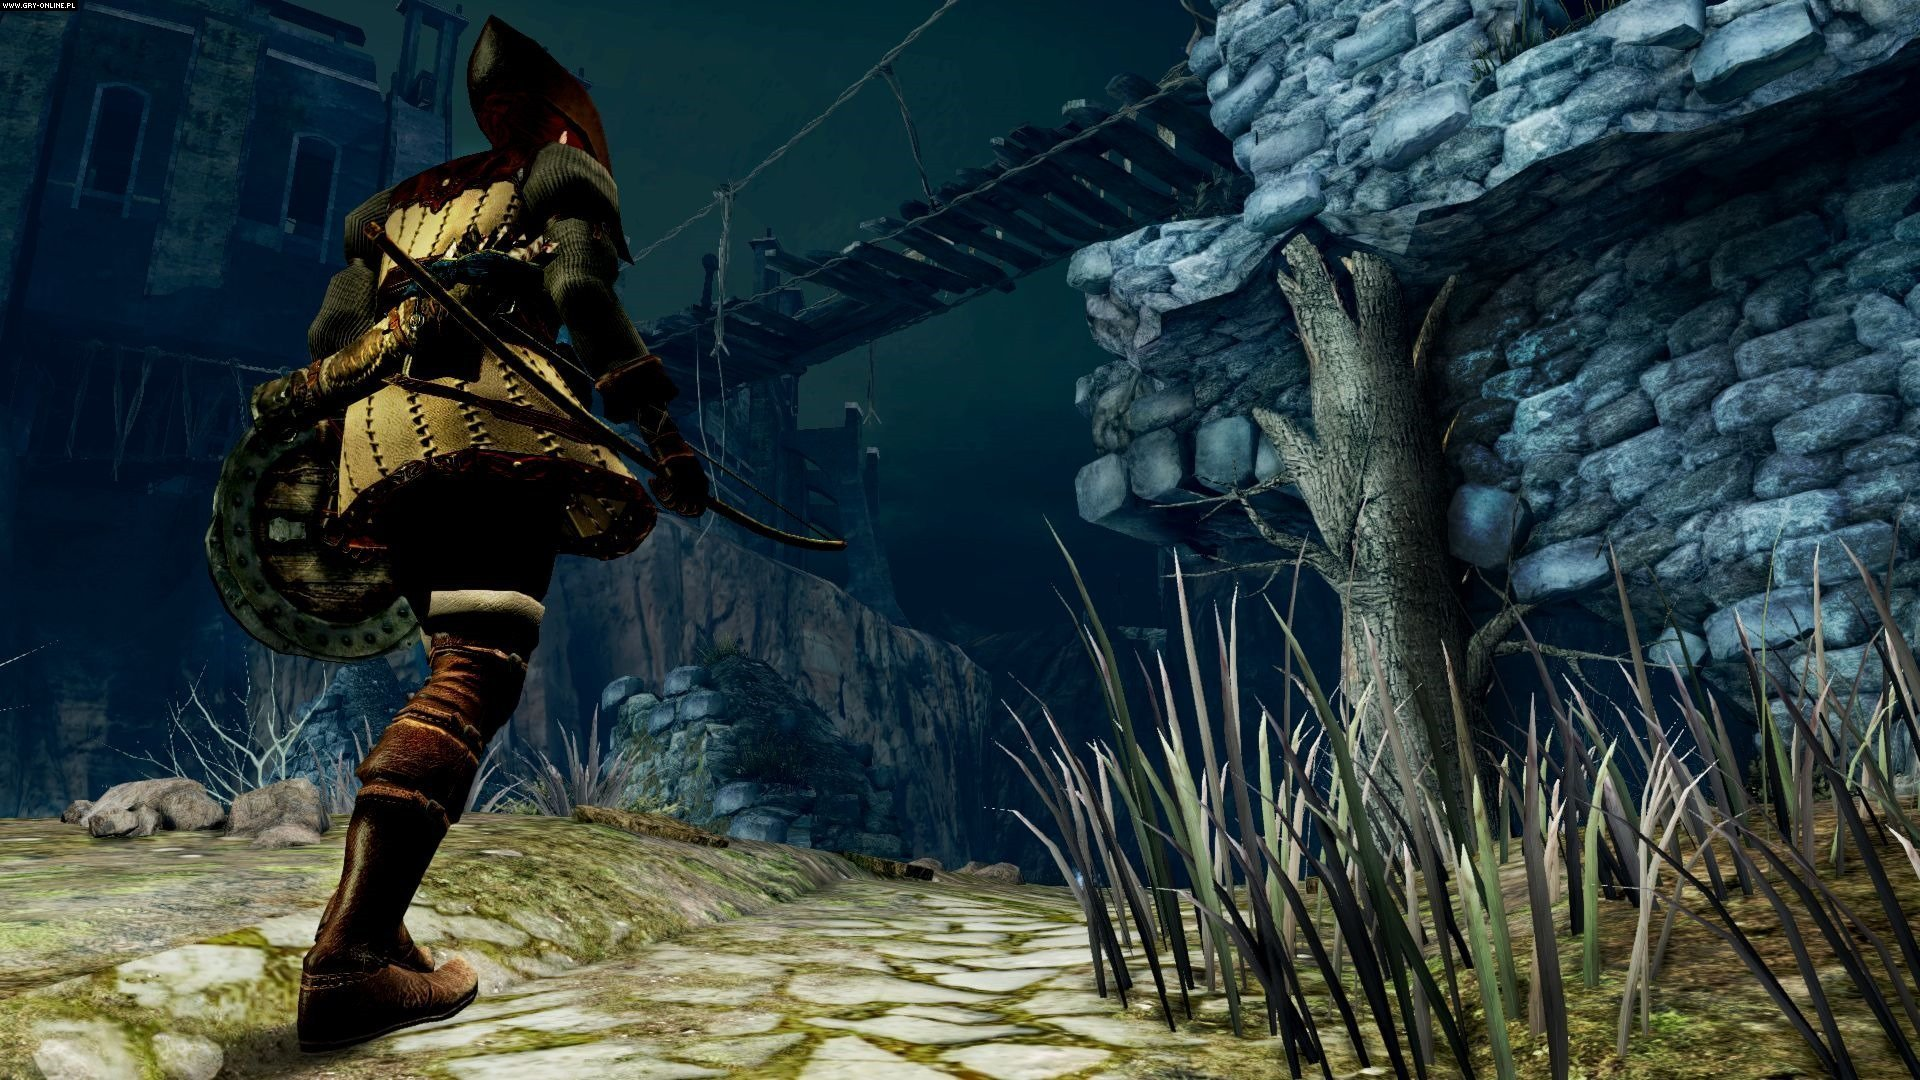 Download Hd 1920x1080 Dark Souls 2 Pc Background Id 10995 For Free